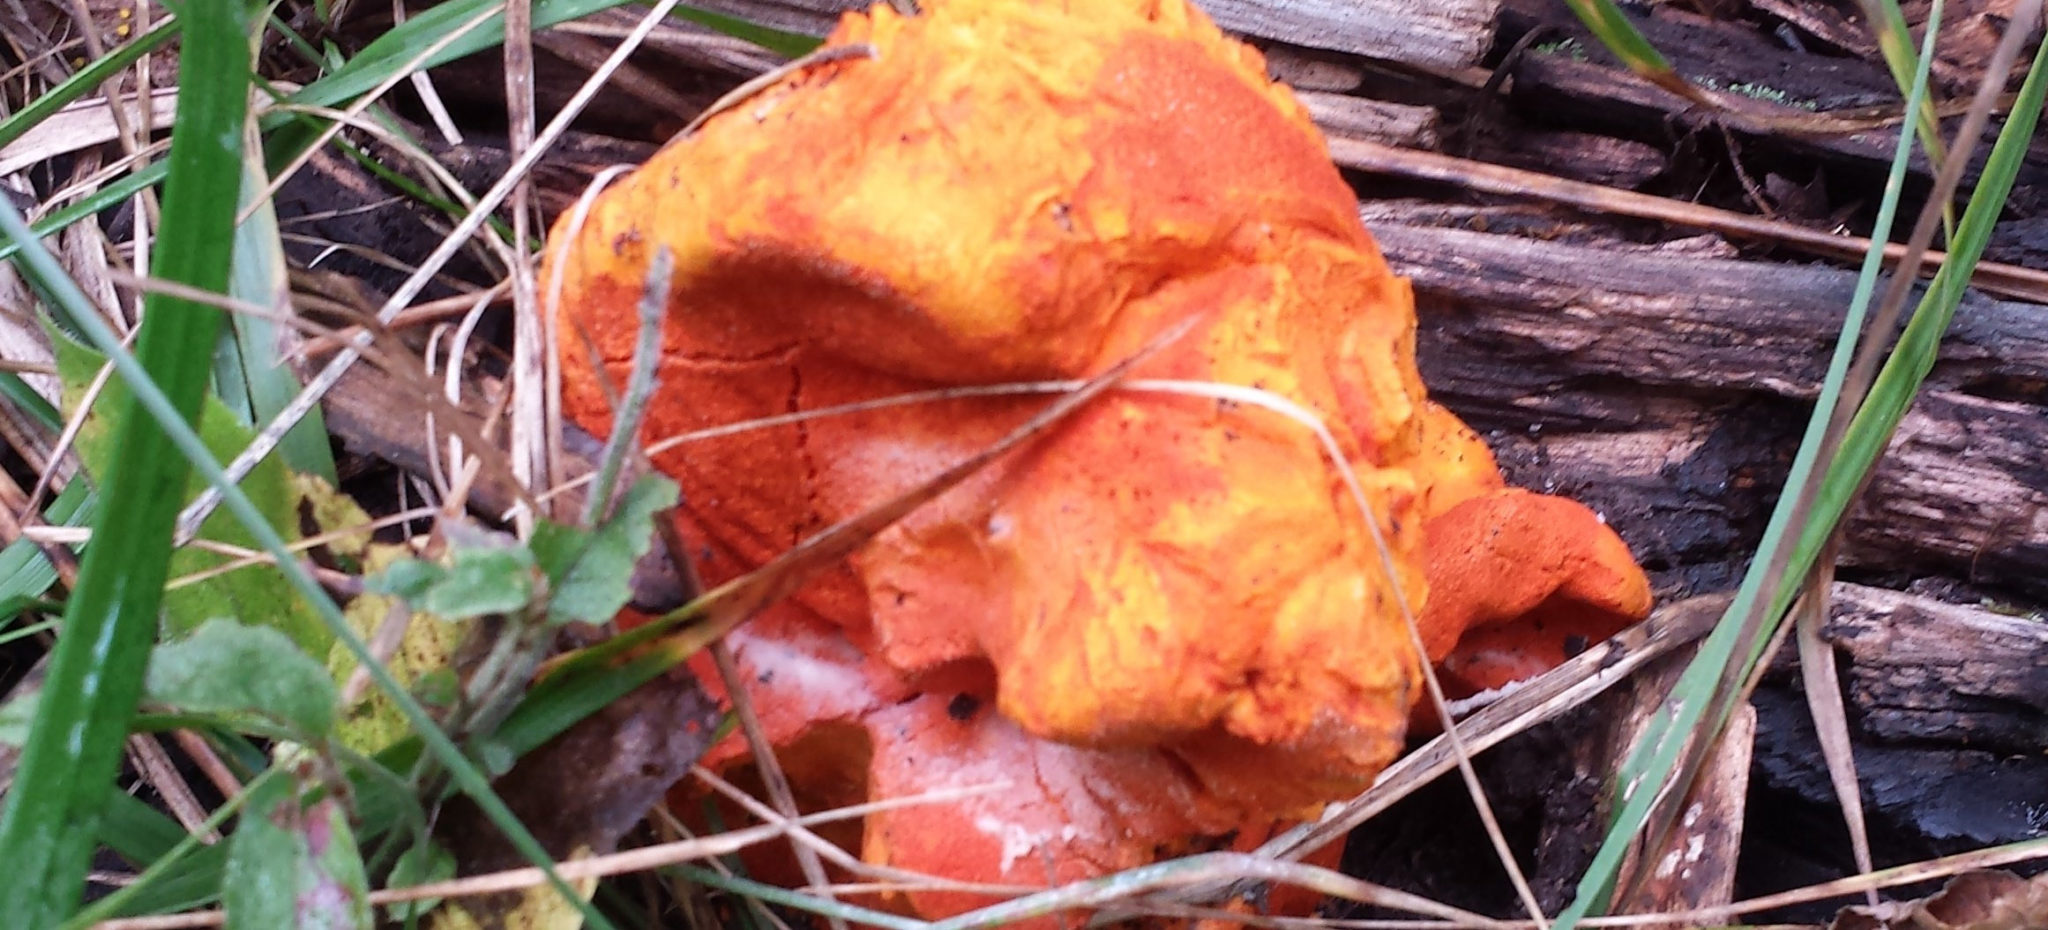 Lobster mushroom surrounded by foliage